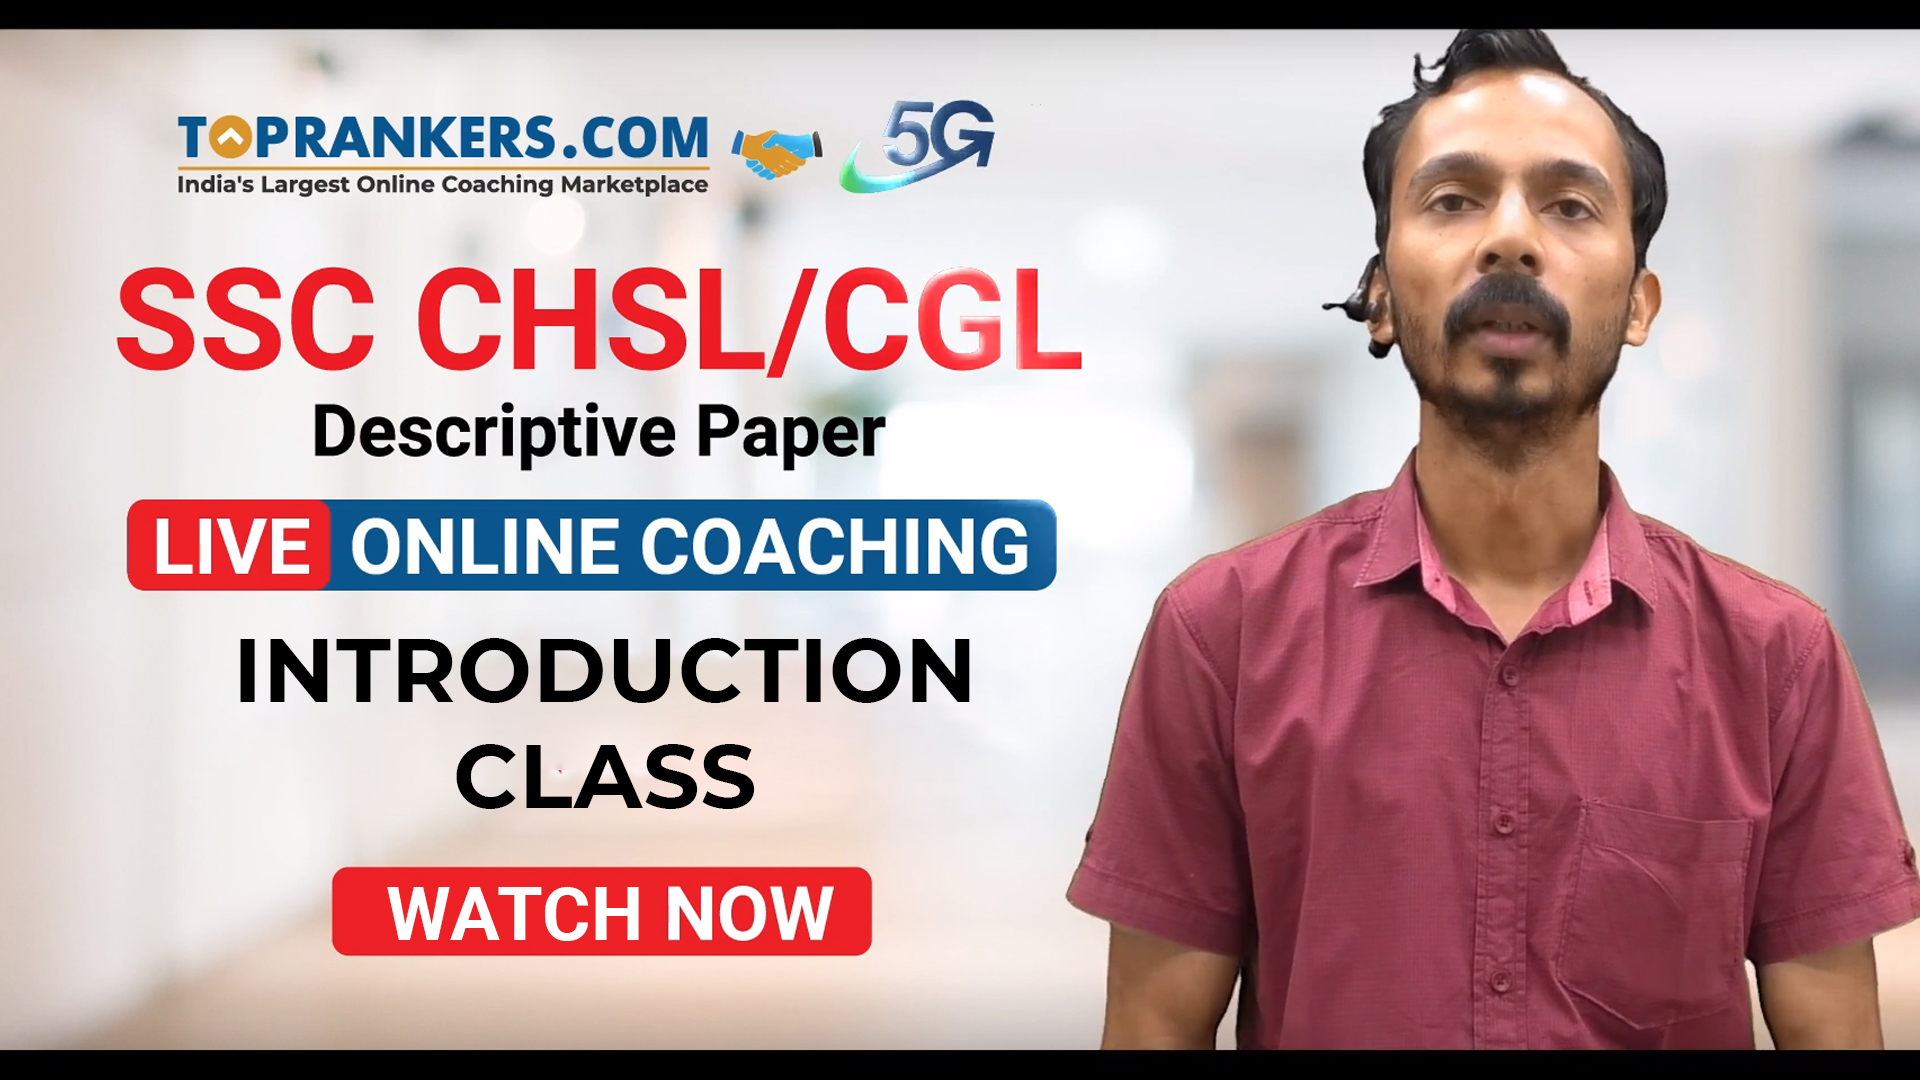 Session 2 Introduction Class for SSC CHSL / CGL Descrptive Classes